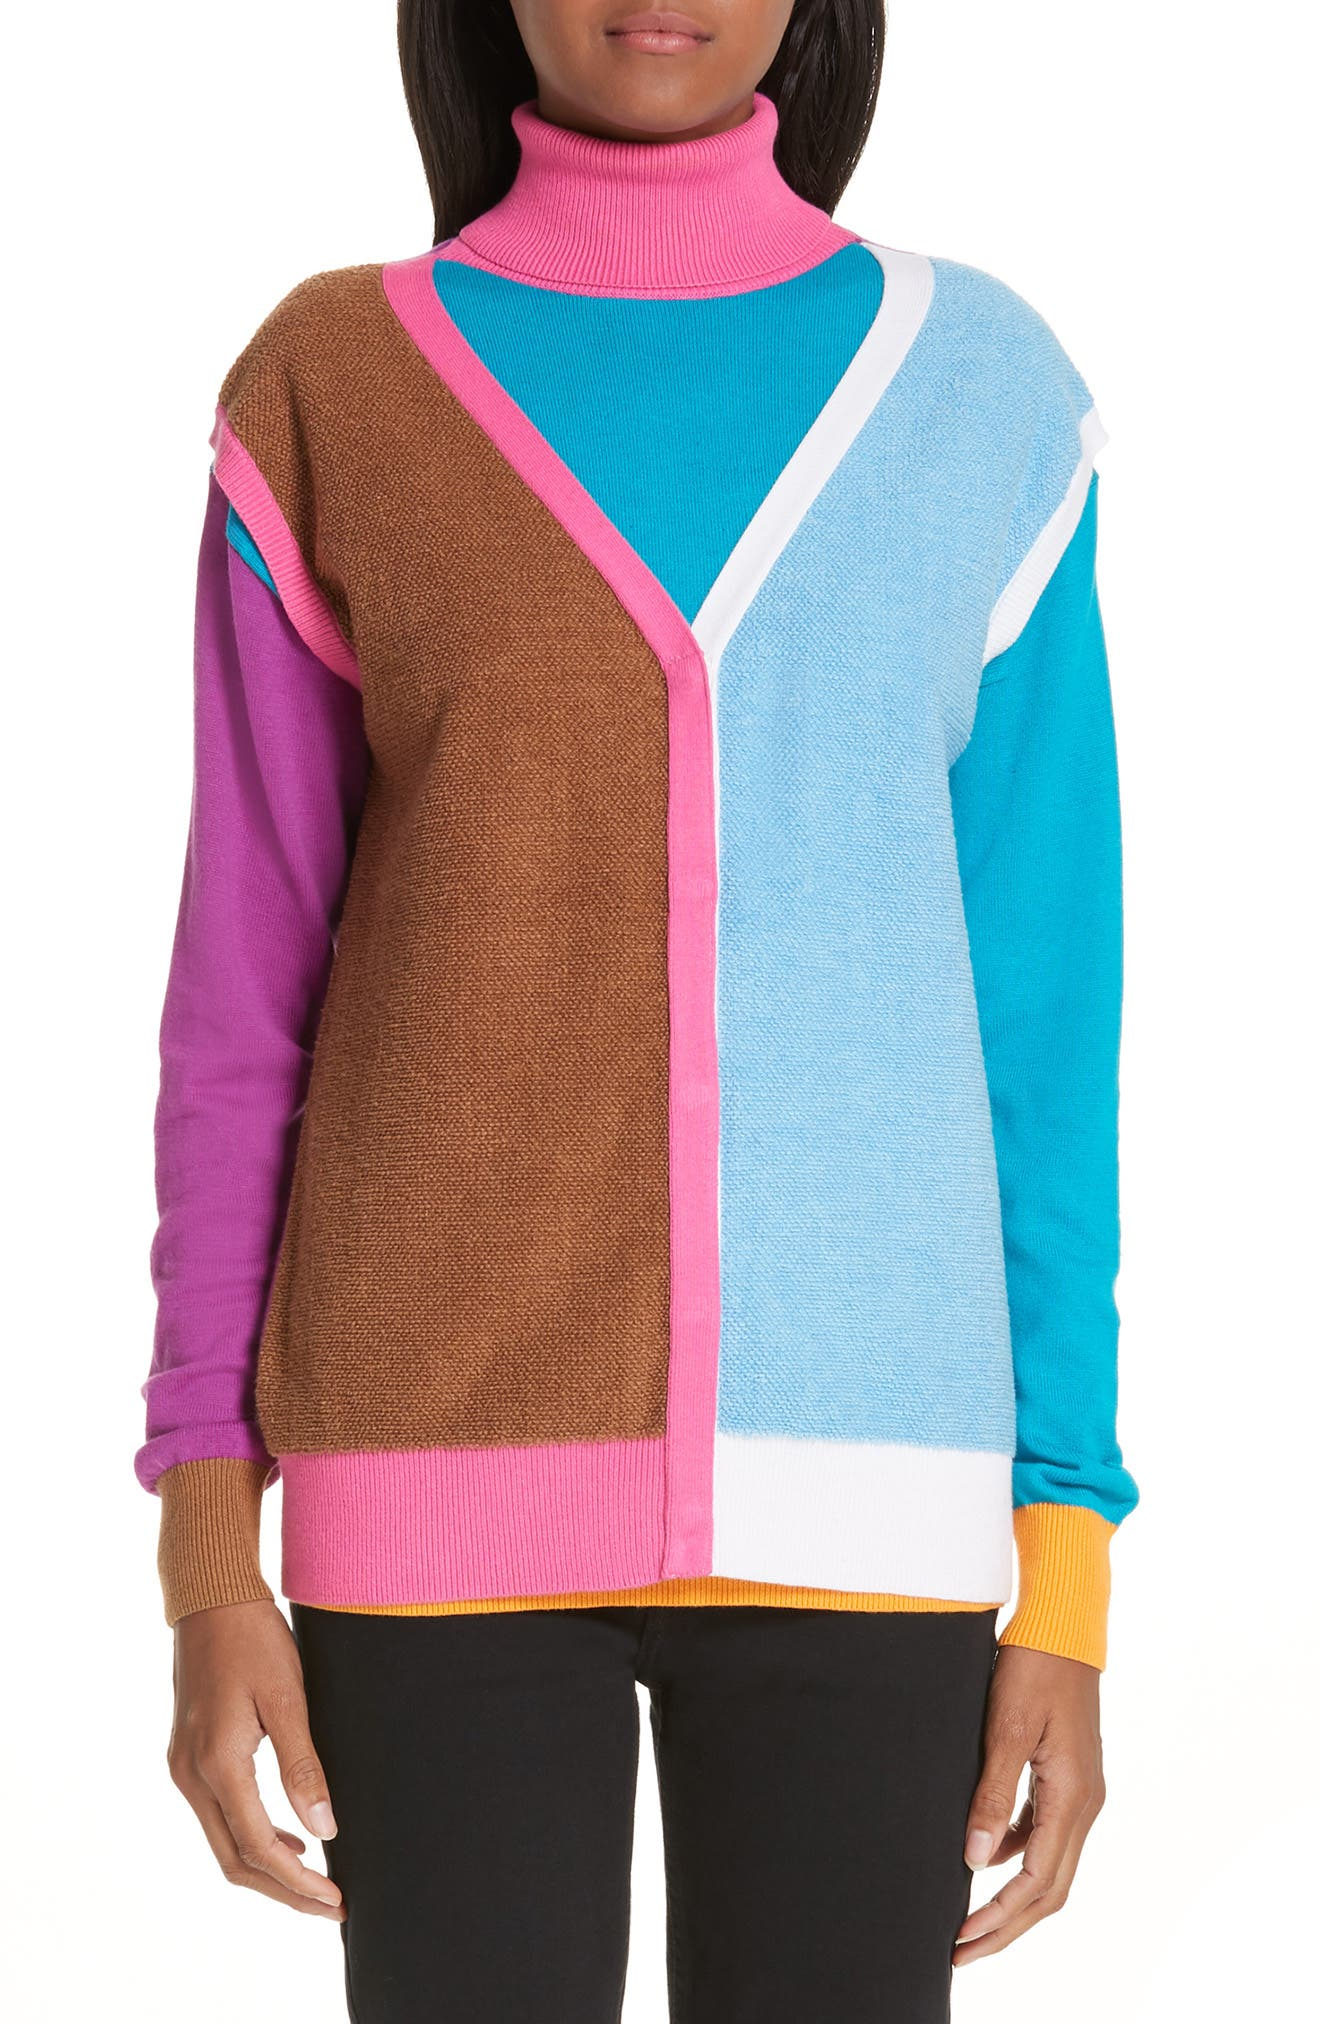 Layered Cotton & Cashmere Sweater,                             Main thumbnail 1, color,                             PINK/BLUE/SAND COMBO